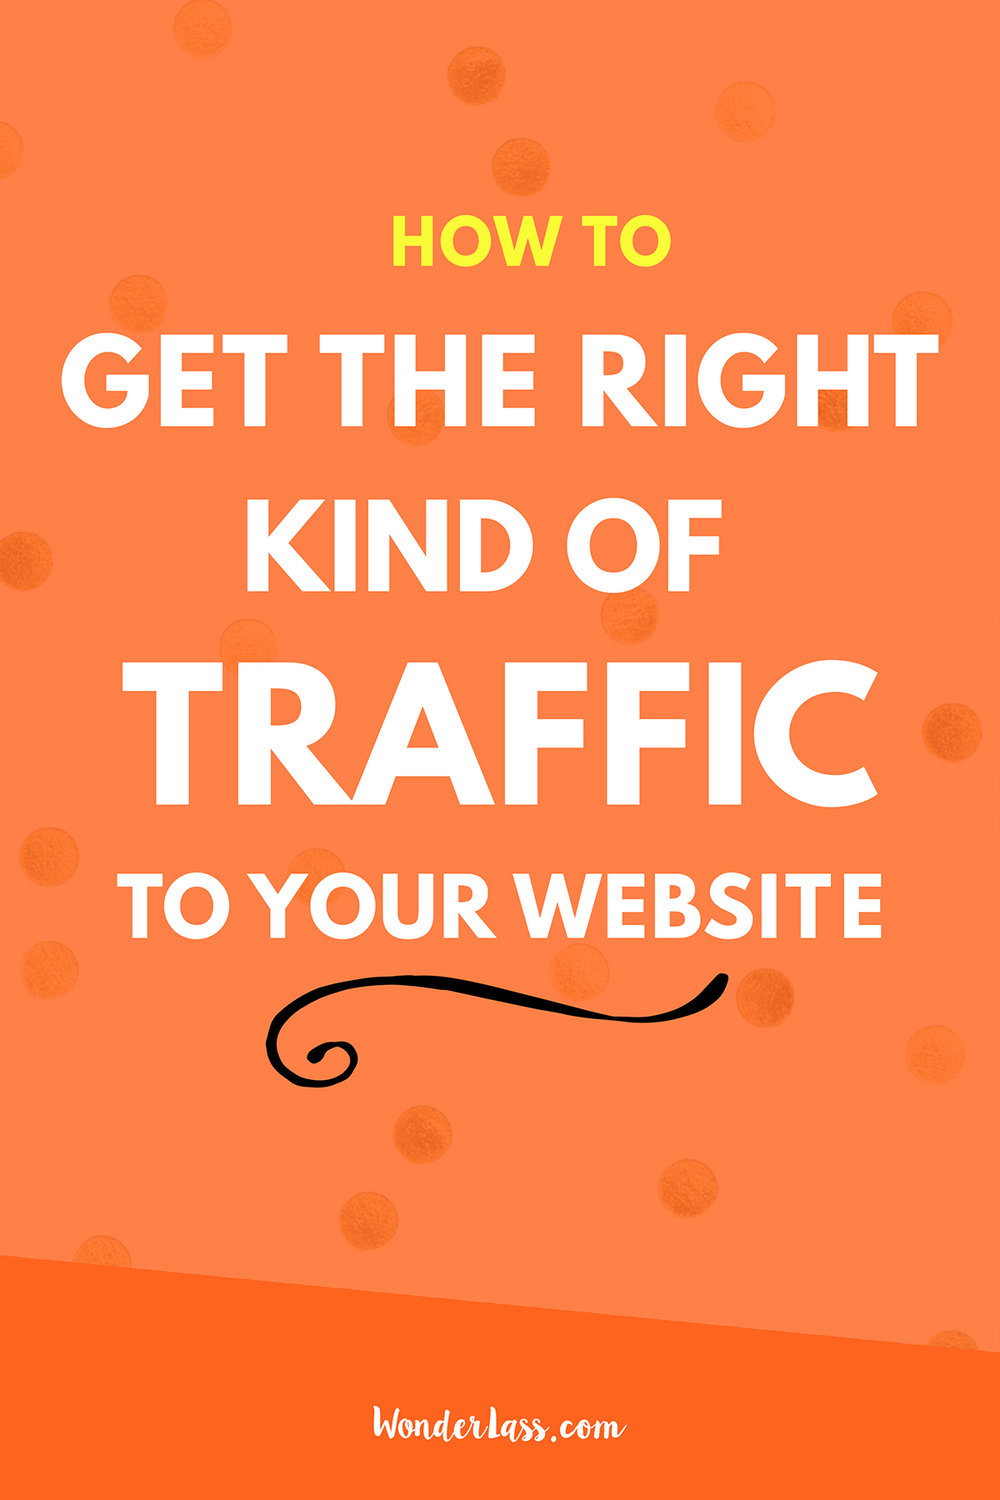 How to Get the Right Kind of Traffic to Your Website | Wondering how you can increase your website's traffic? Check out this blog post for how to get the RIGHT kind of traffic! | Wonderlass